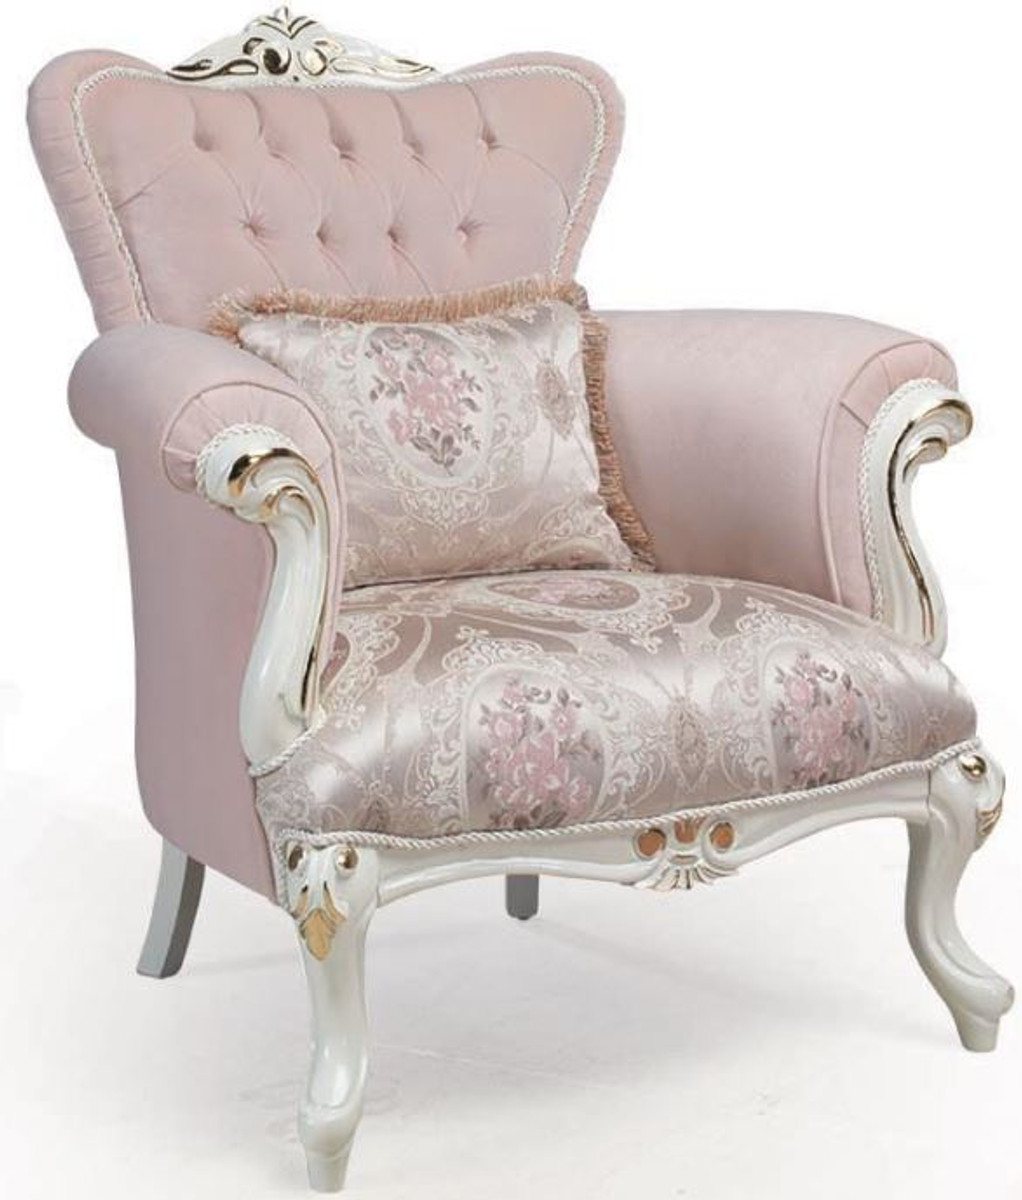 Casa Padrino Luxury Baroque Armchair Pink White Gold 83 X 96 X H 102 Cm Living Room Armchair With Decorative Pillow Baroque Furniture - Casa Padrino Sessel